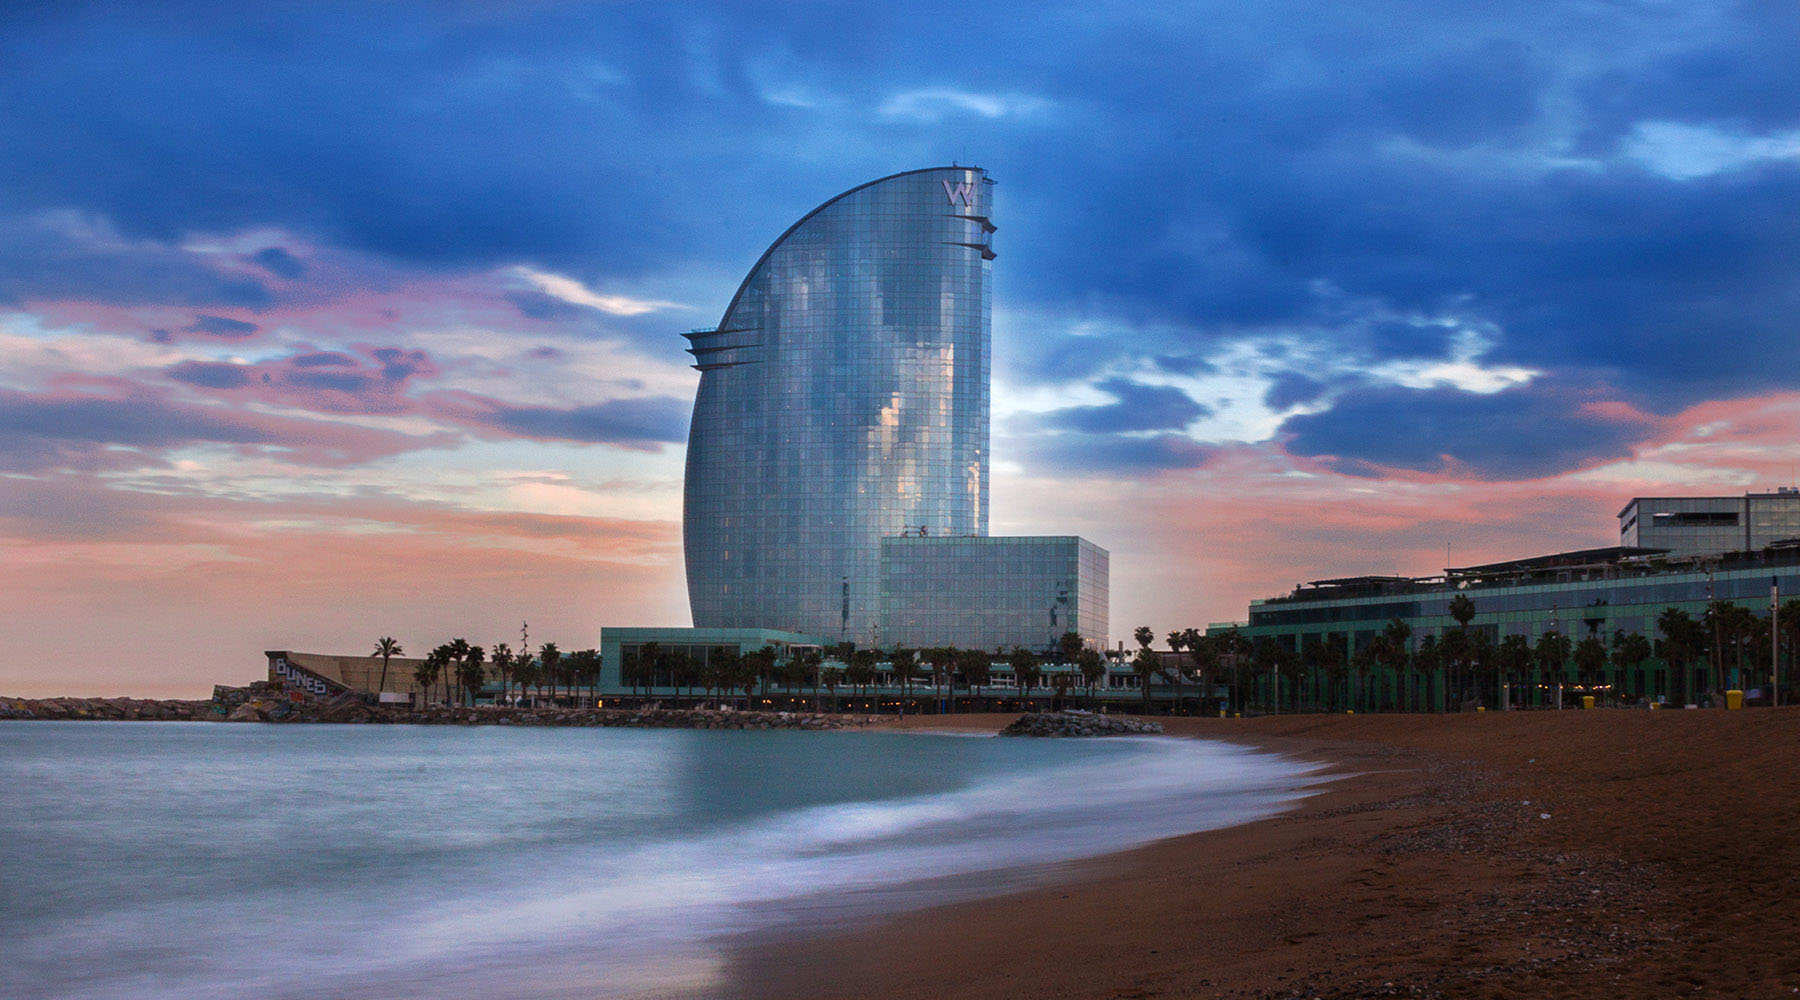 8-Night Med Cities Voyage & 3-Night Post Barcelona Stay